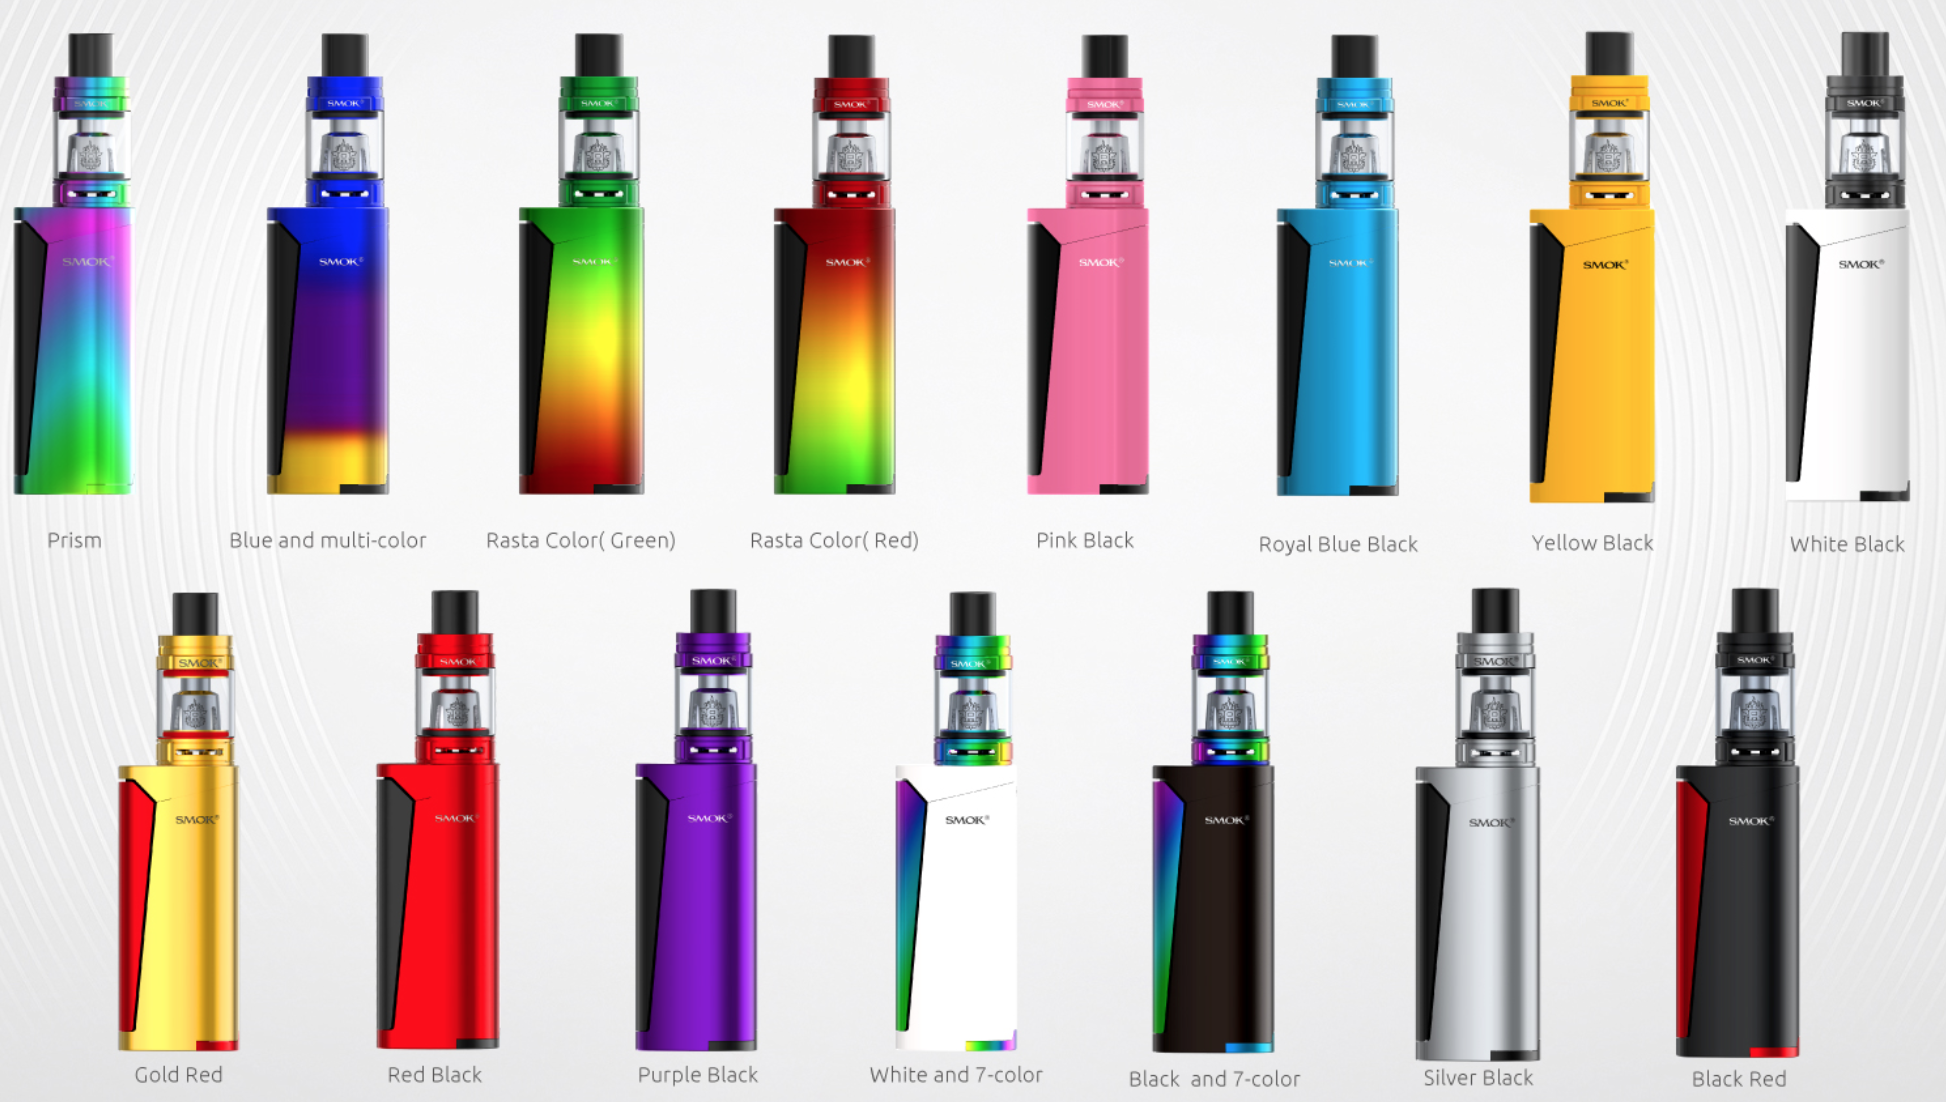 SMOK Priv V8 Kit Review - The Design and Material